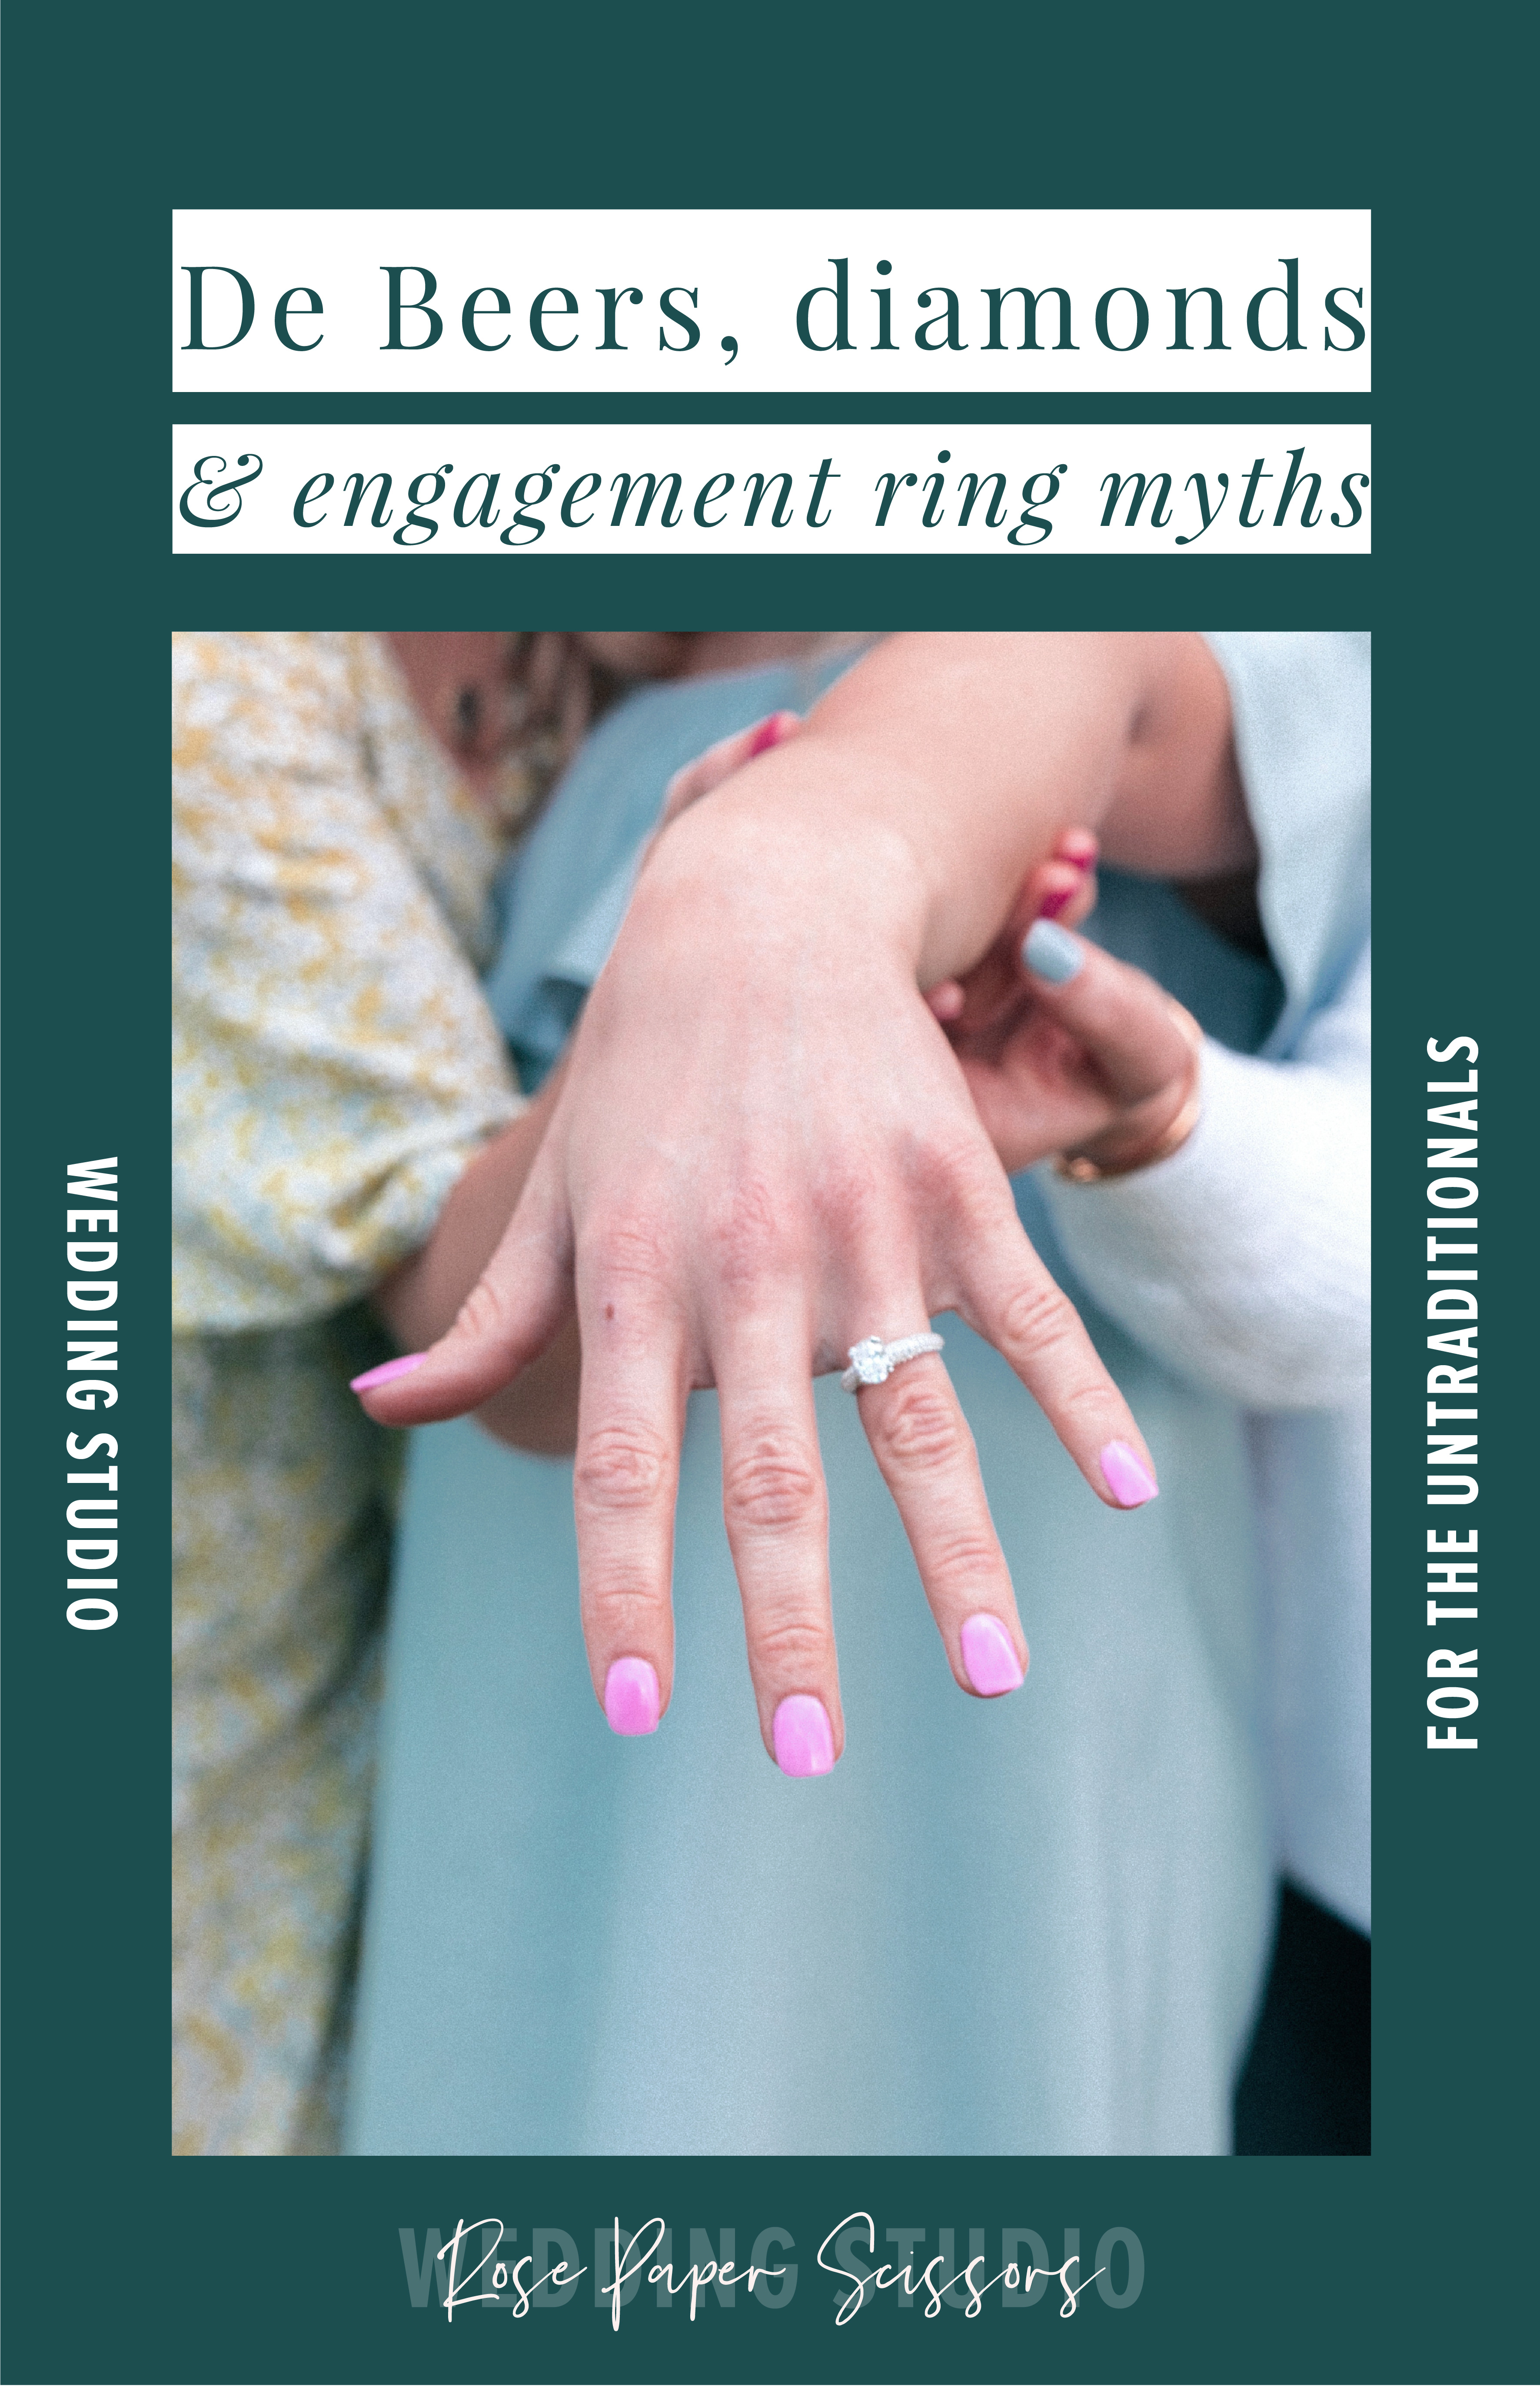 De Beers diamonds and engagement ring myths